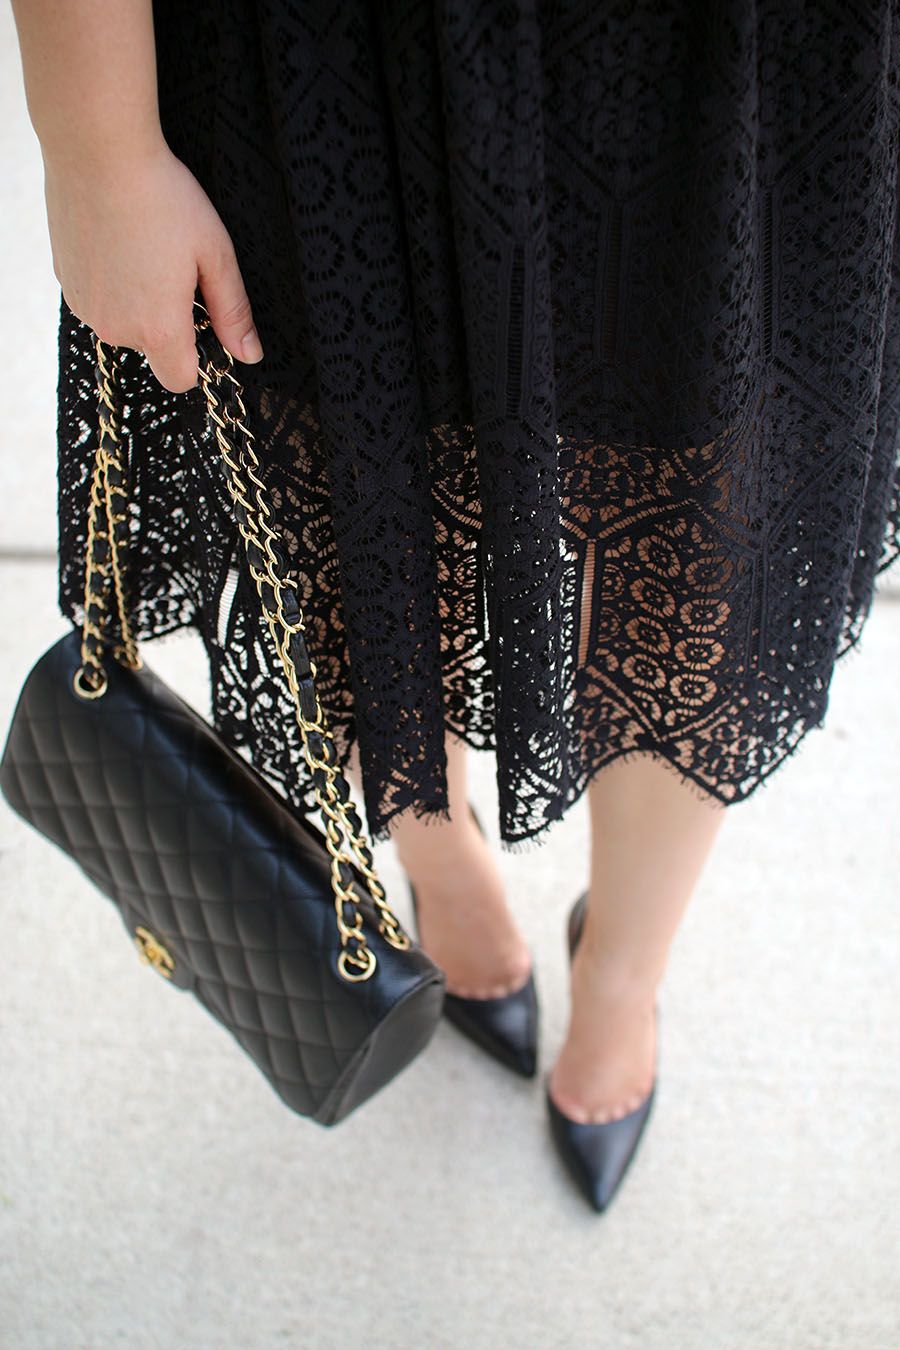 outfit-ideas-black-lace-dress-pumps-quilted-handbag